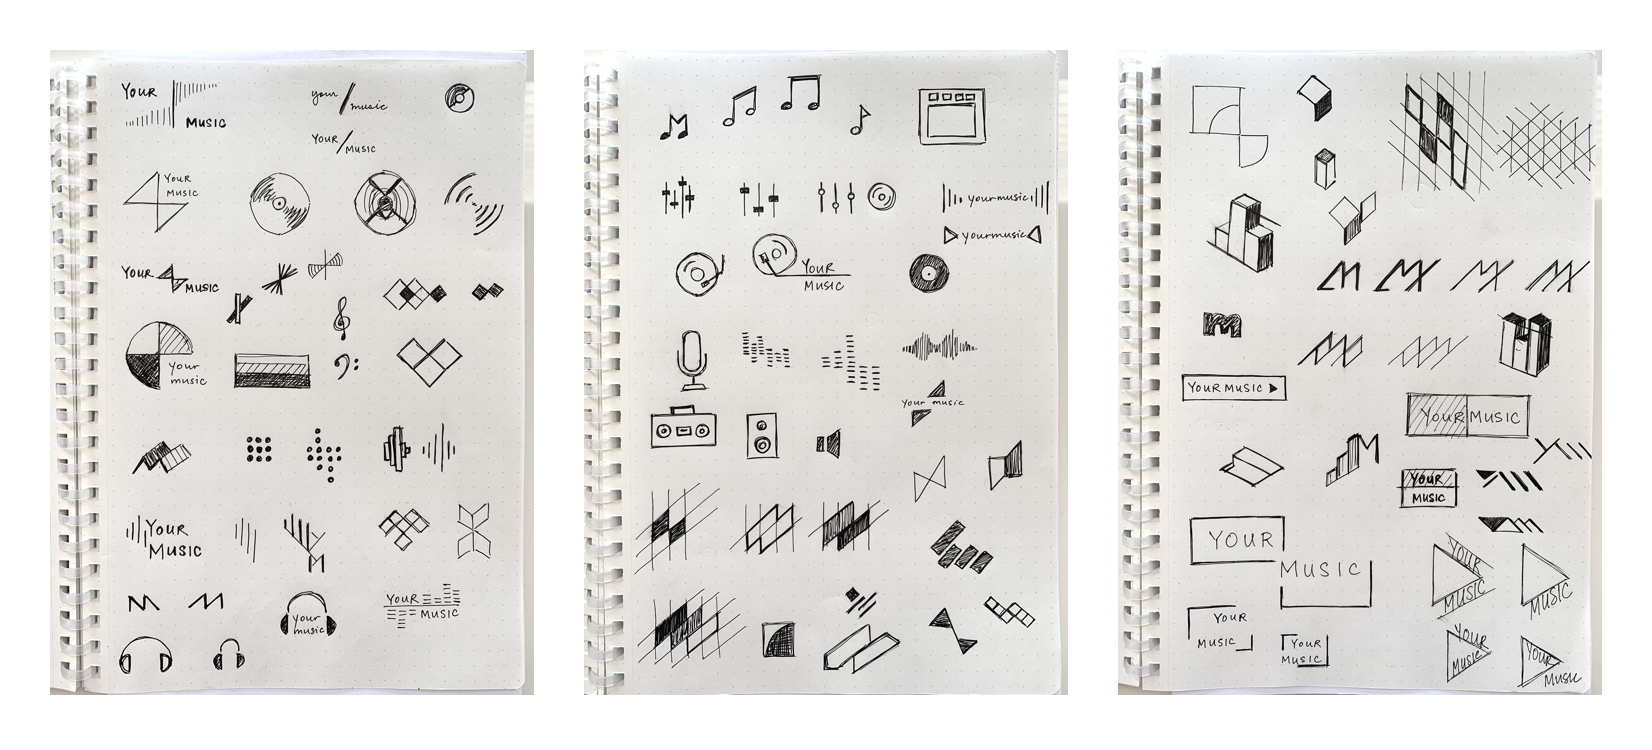 Your Music Logo Sketches Case Study V1